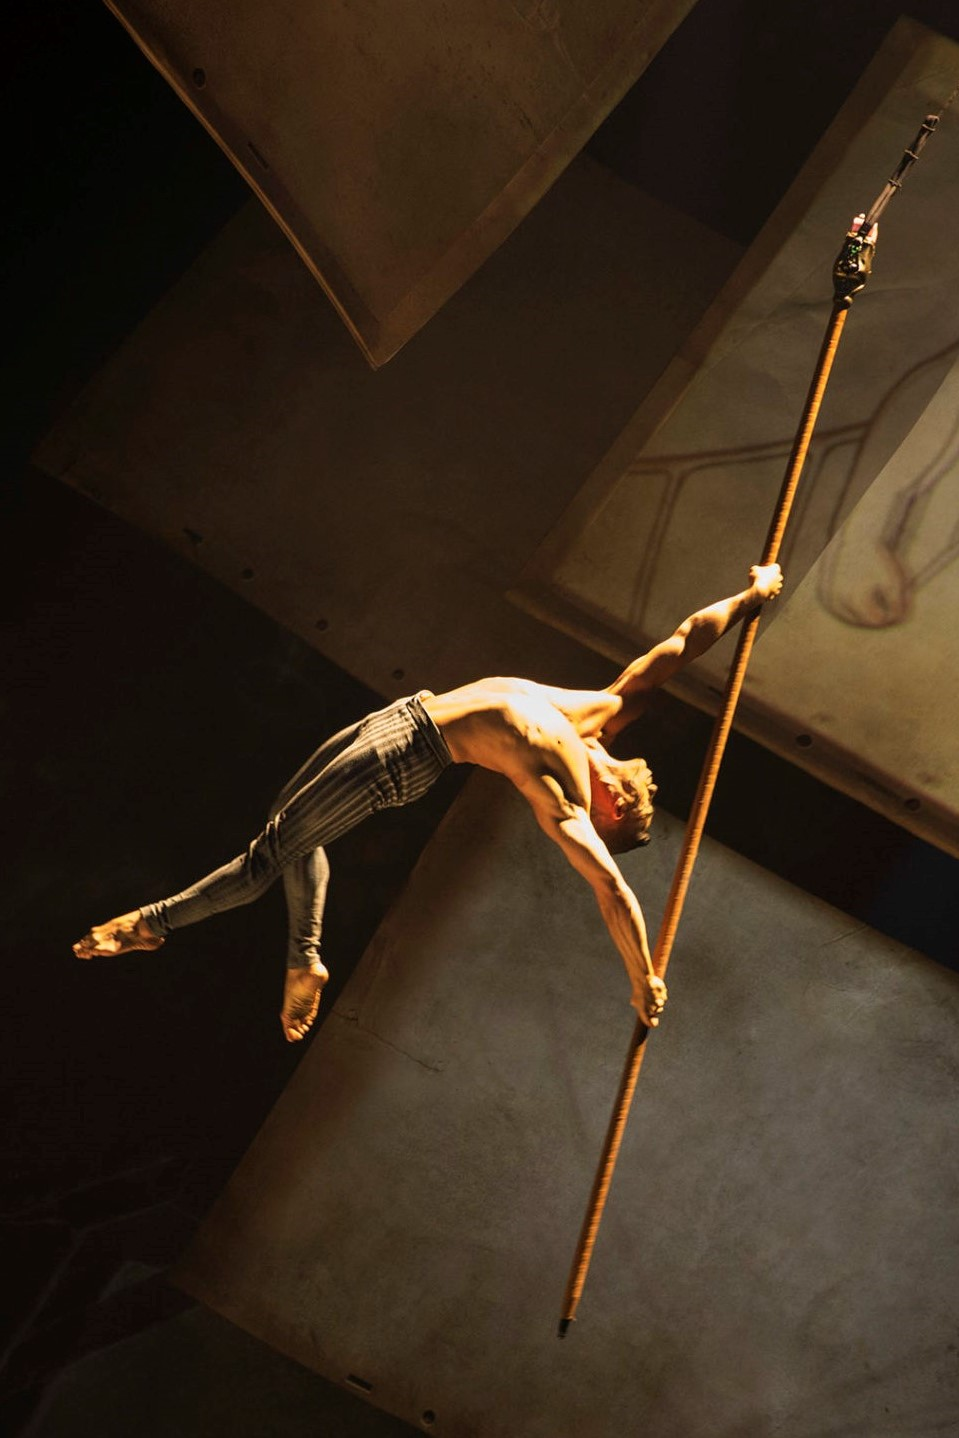 The new Cirque du Soleil show at Disney Springs is called Drawn to Life